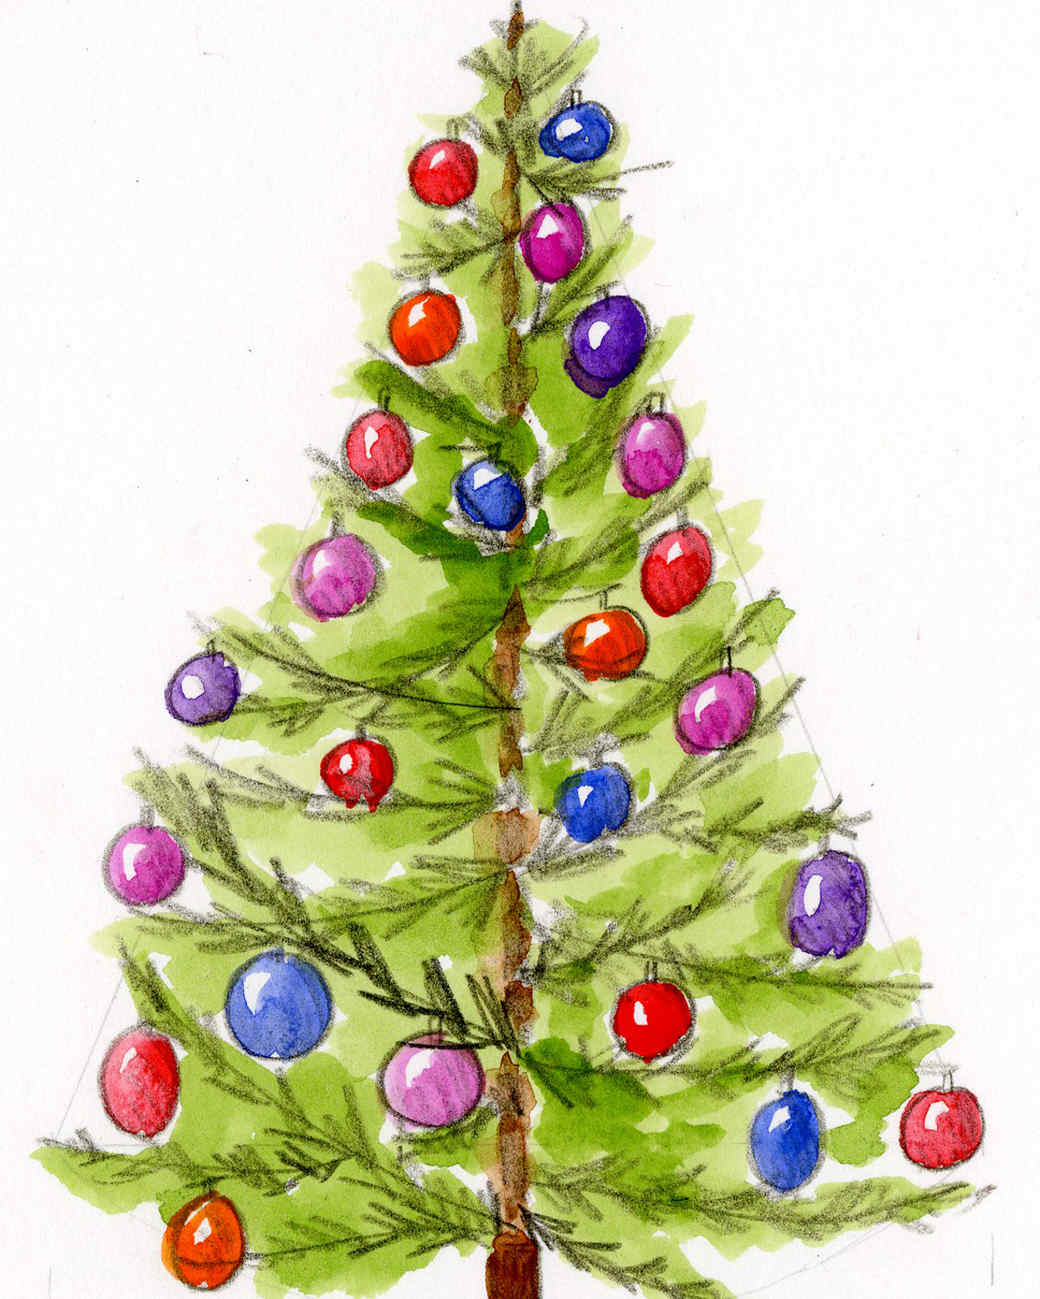 drawing of green christmas tree with colorful bulbs